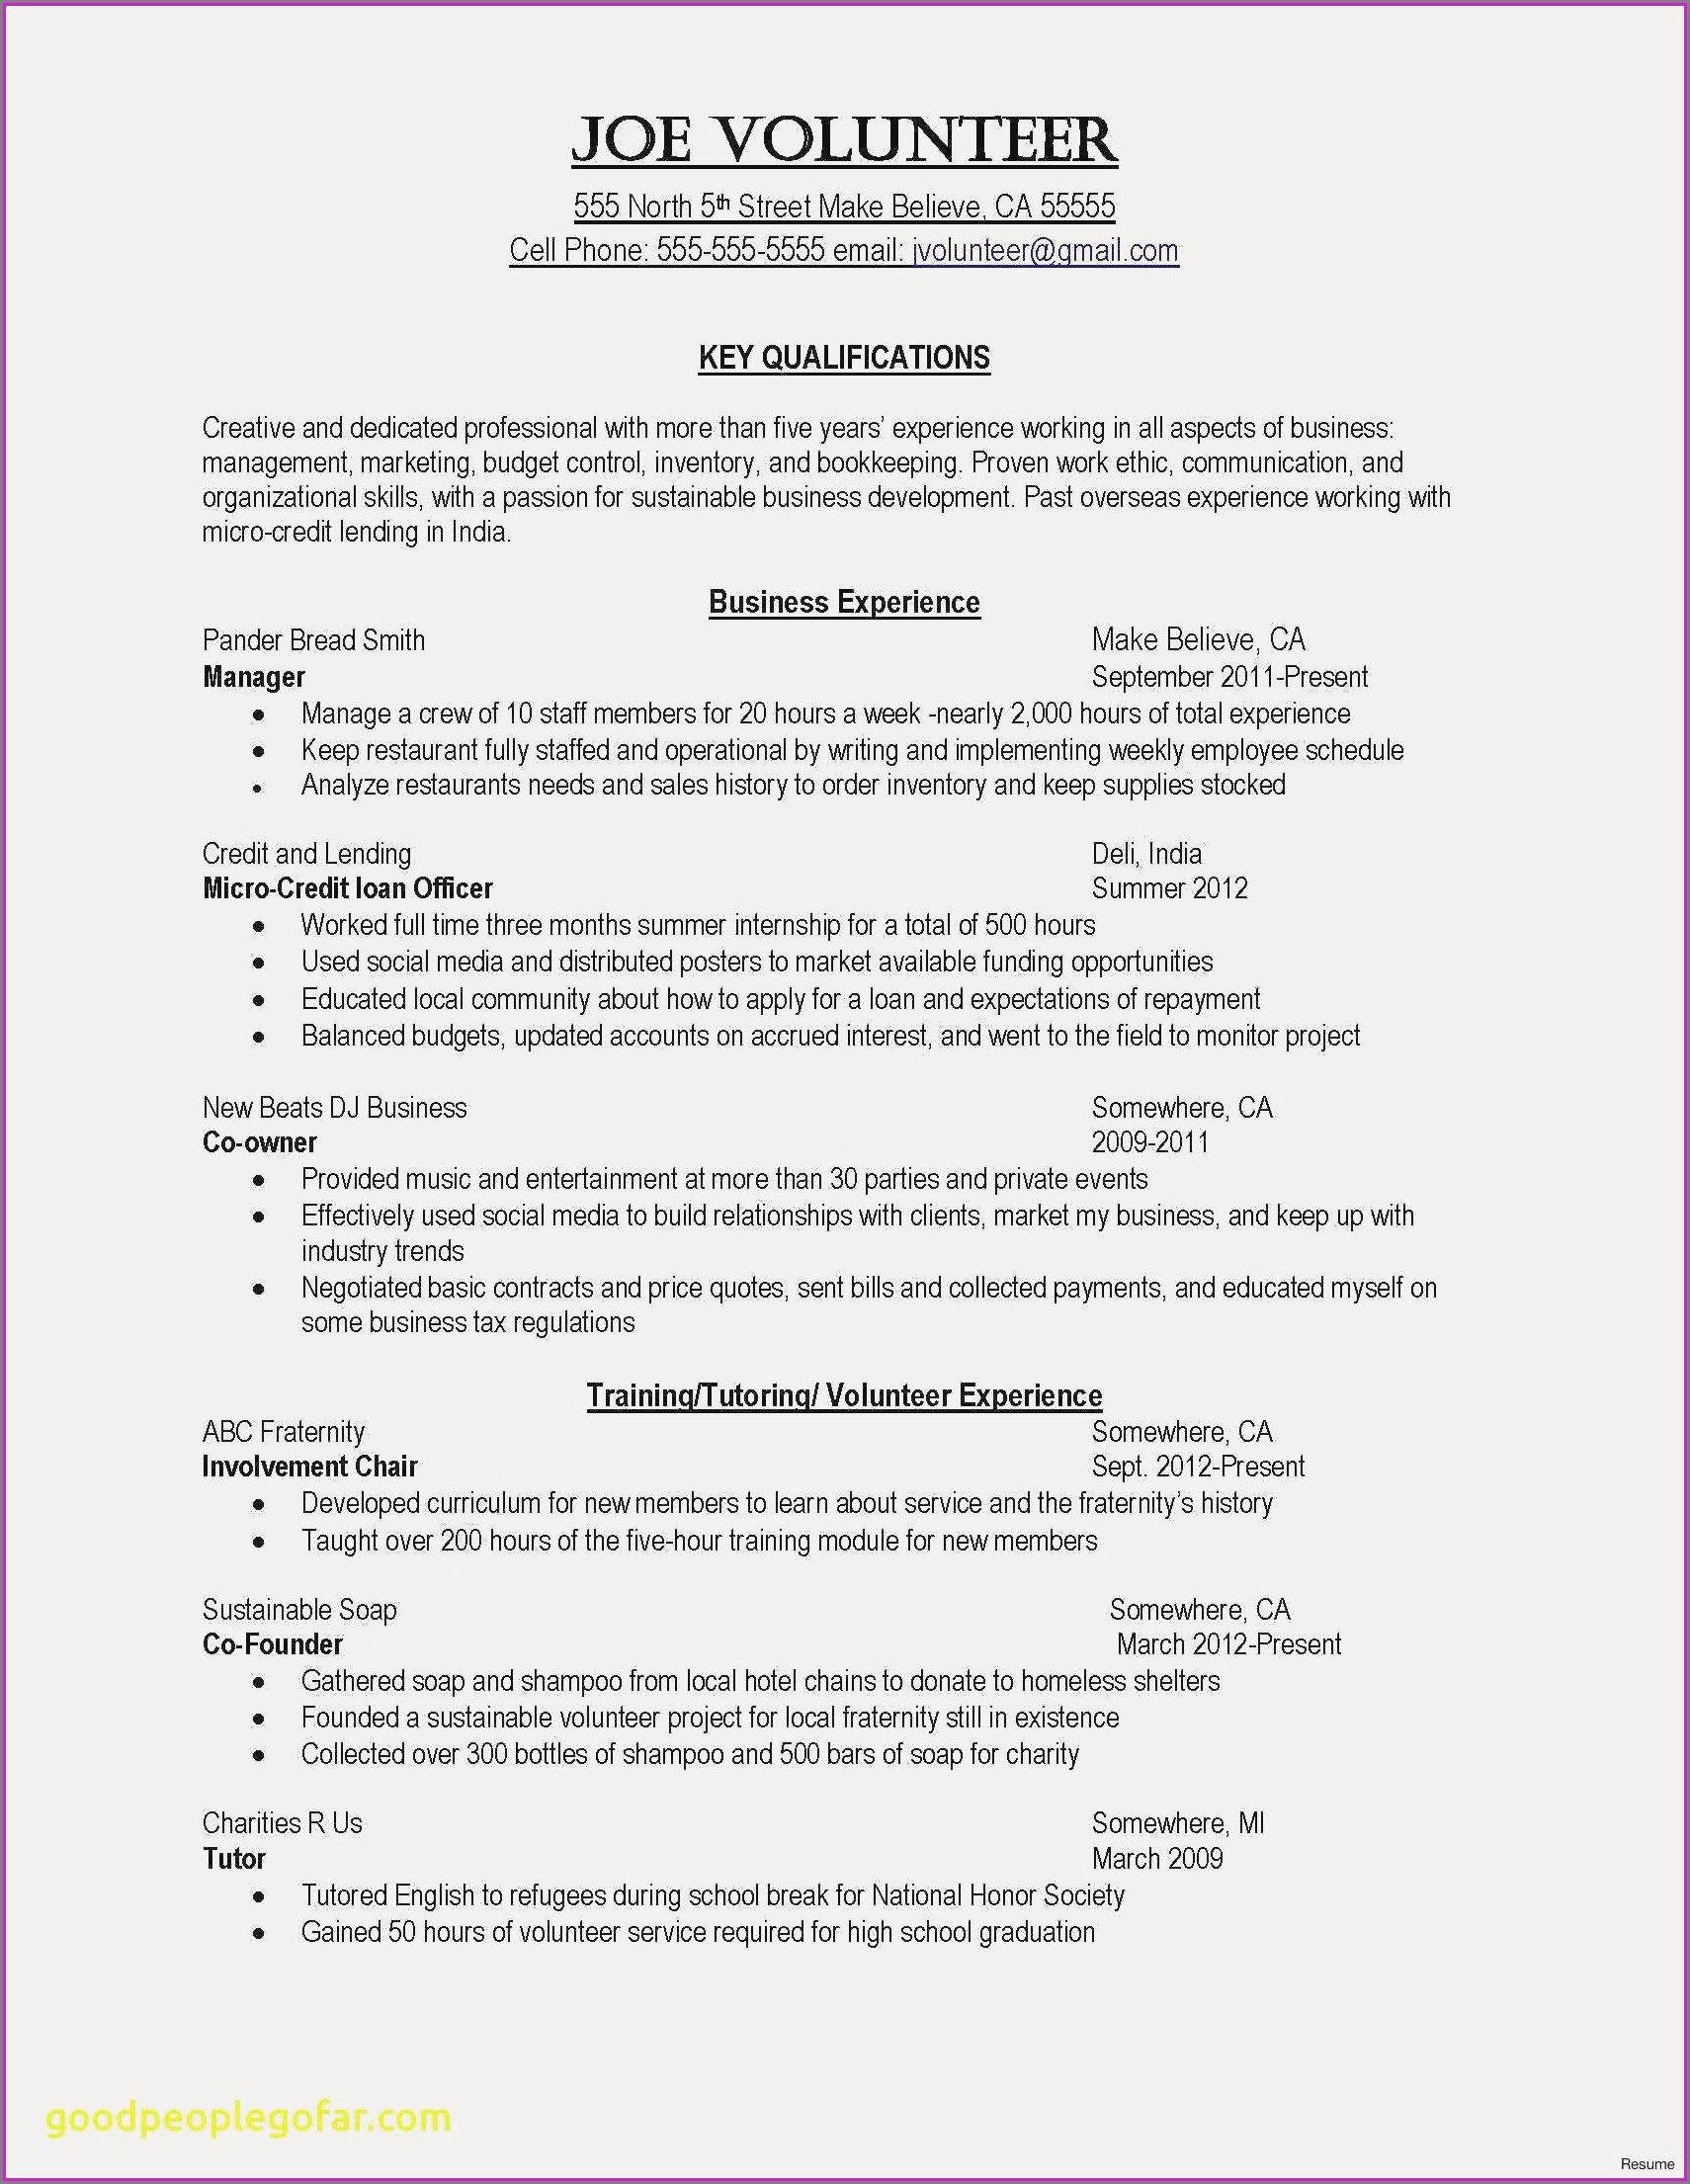 Free Resume Templates For Registered Nurses